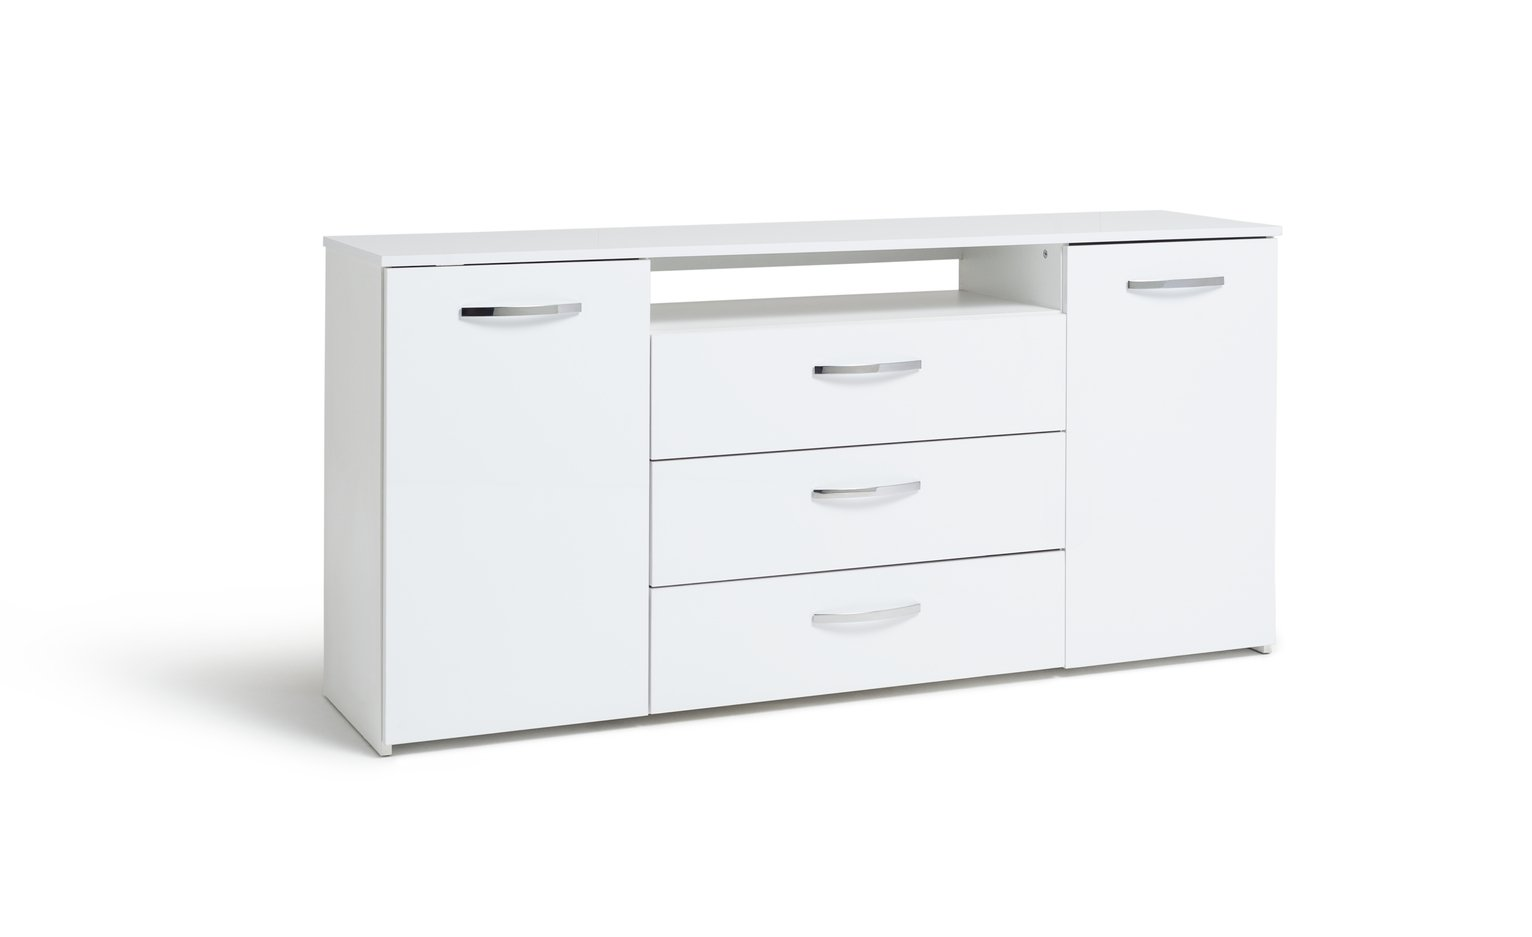 Buy Coffee tables sideboards and display units at Argos  : 4518062RSET from www.argos.co.uk size 2000 x 1228 jpeg 152kB